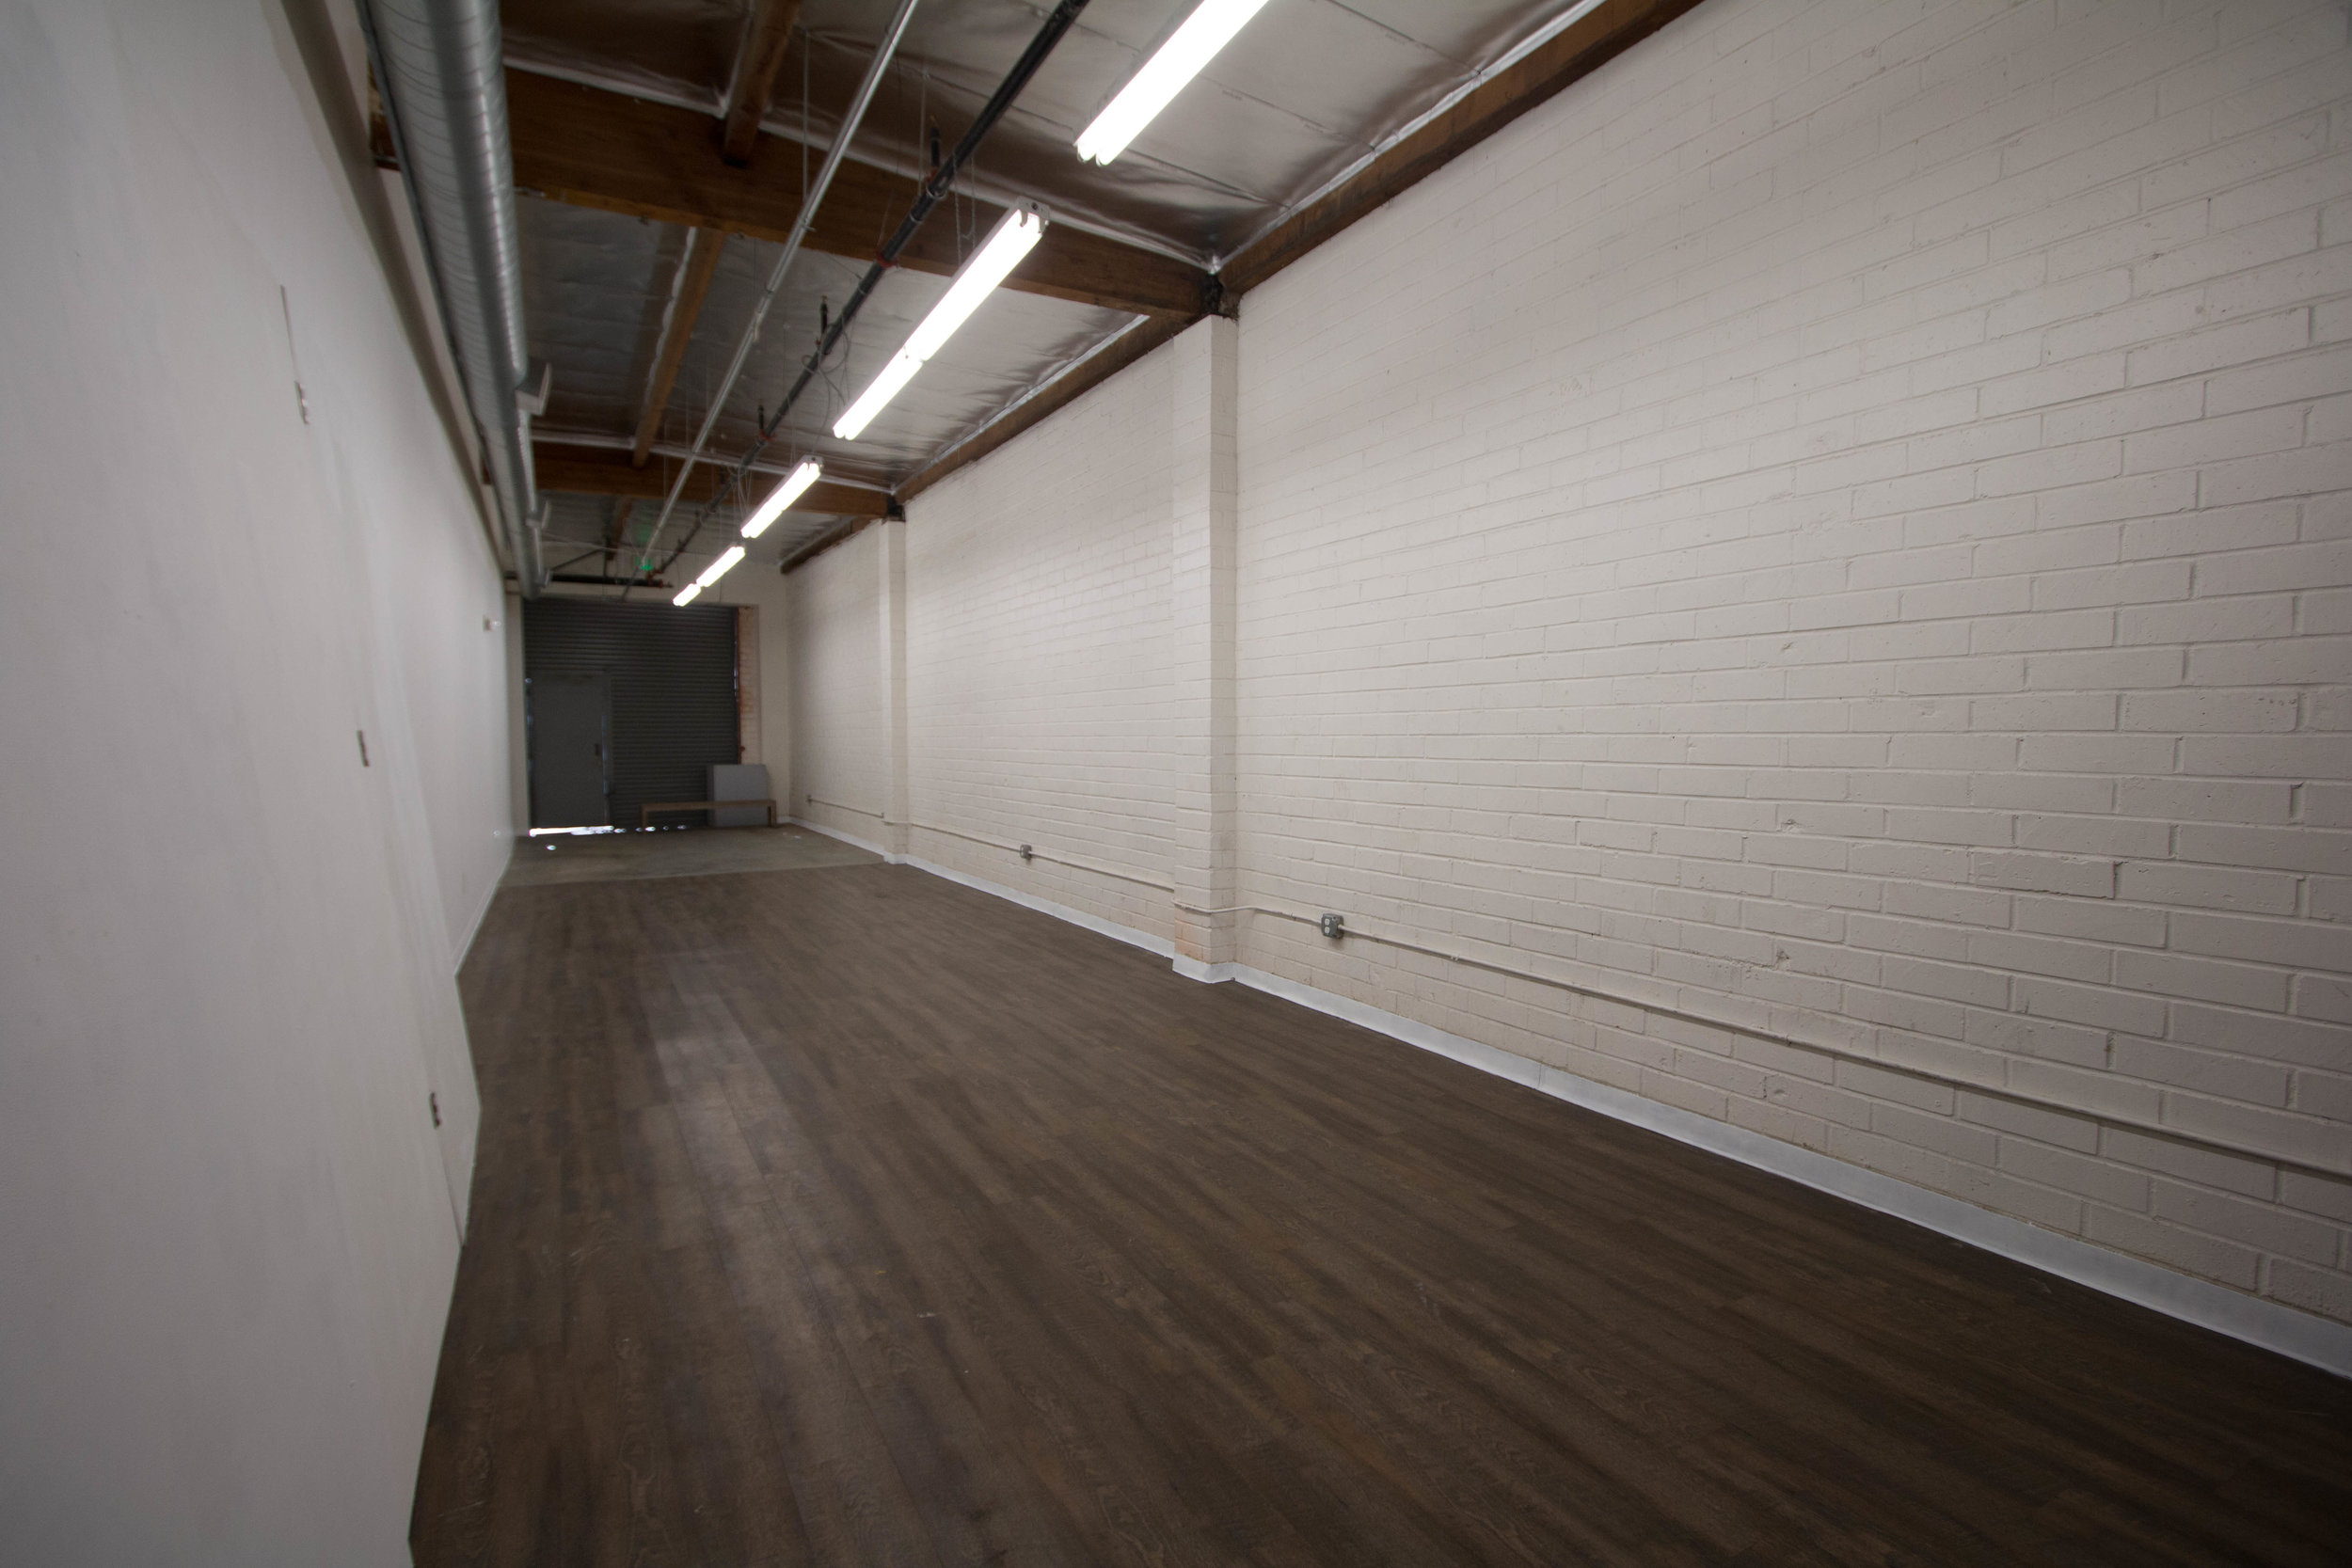 Back room is about 800 square feet and front room is another 400 suare feet *area holds 80-120 people.